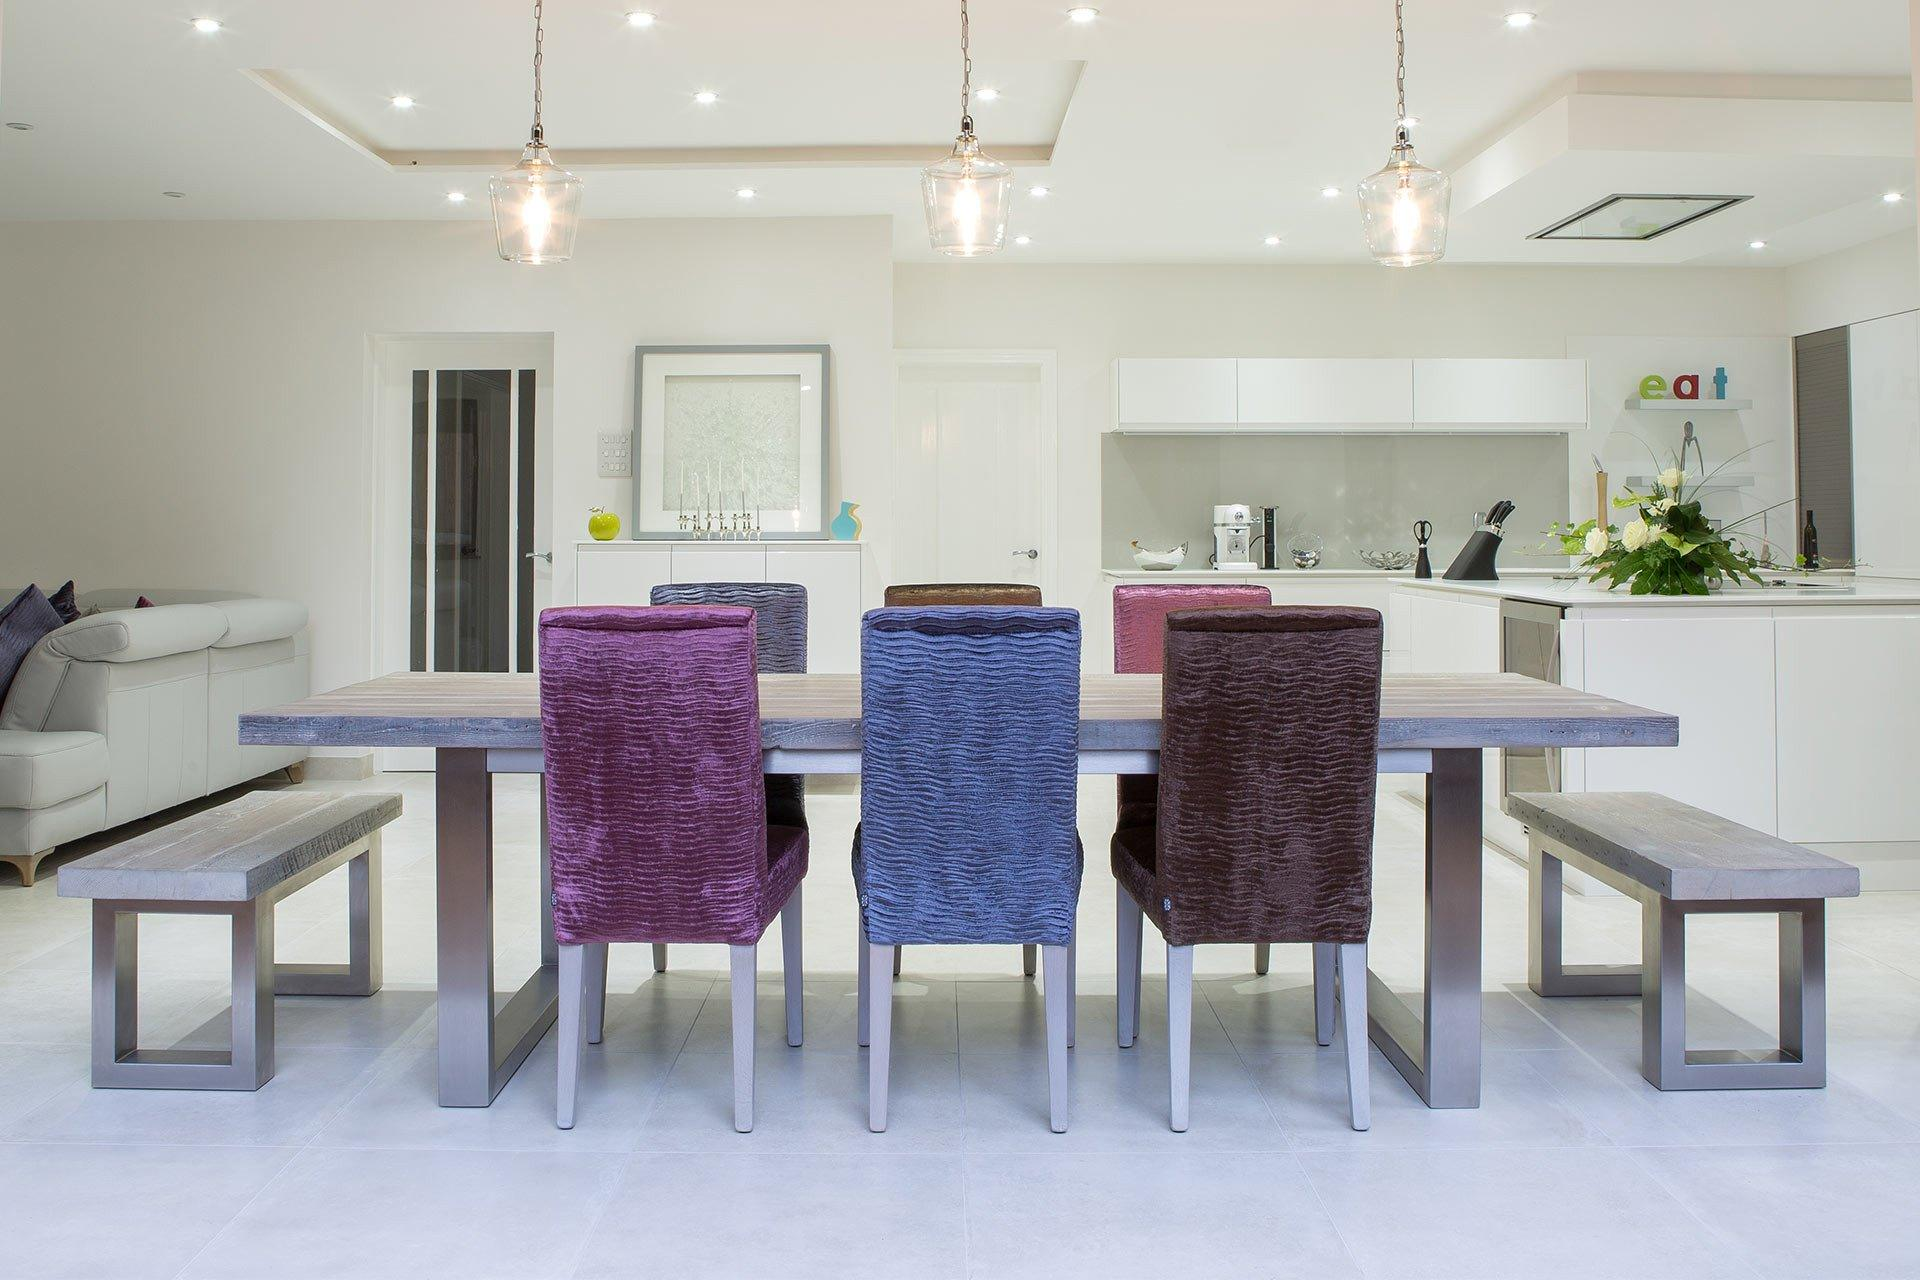 Grey 284cm Long Overhang Table With End Benches & Annabel Chairs (Sold Separately)